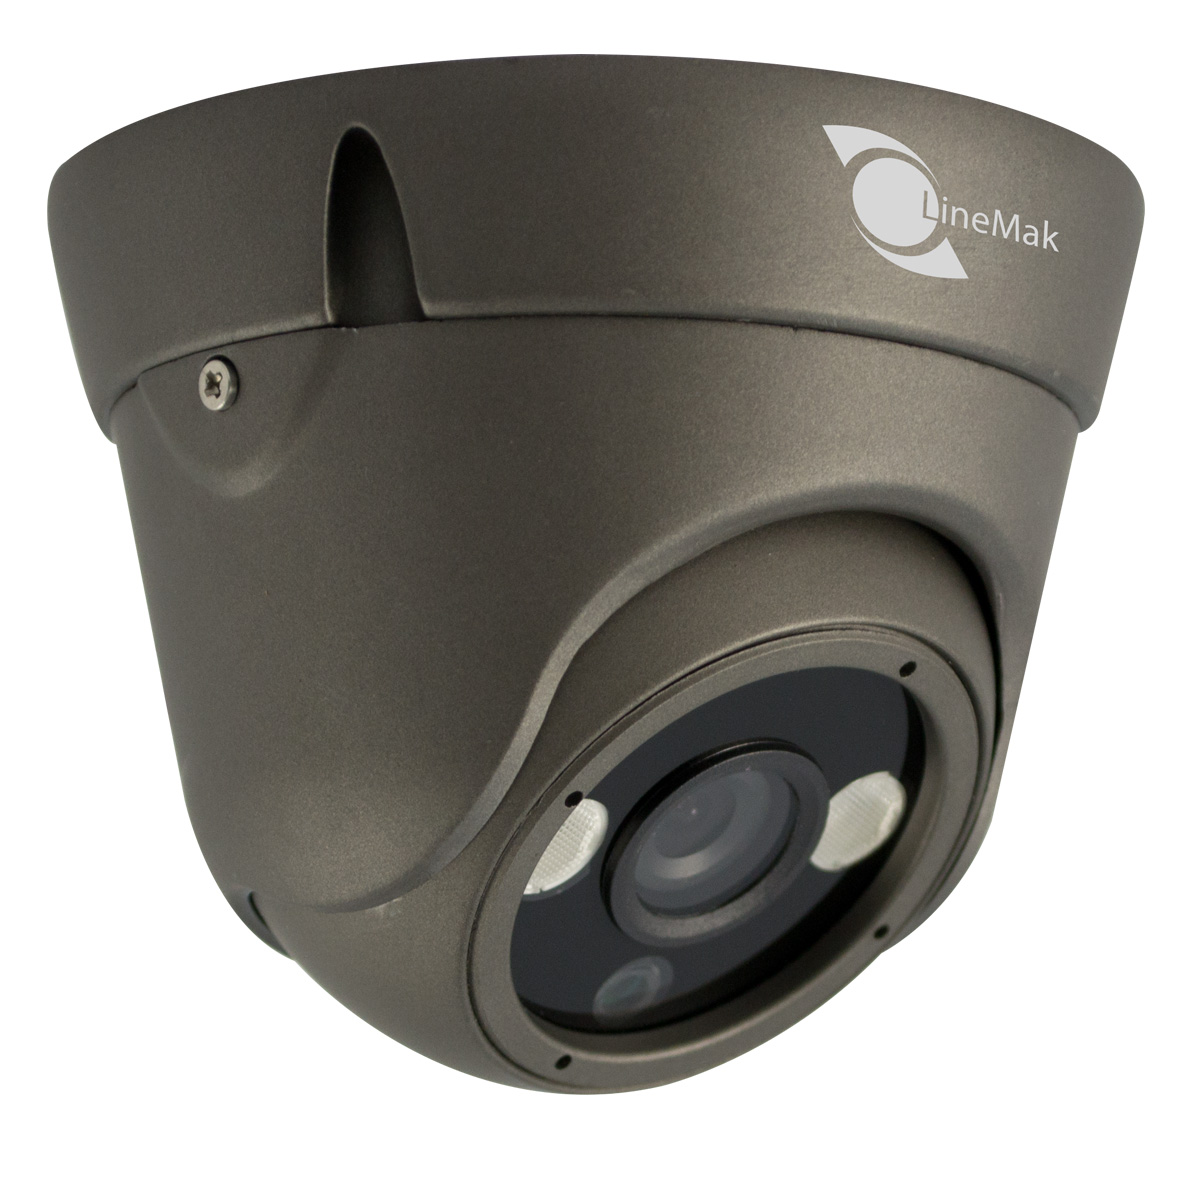 Vandalproof Dome camera, HD Sensor, 800TVL, 3.6mm lens, 2 LED Array